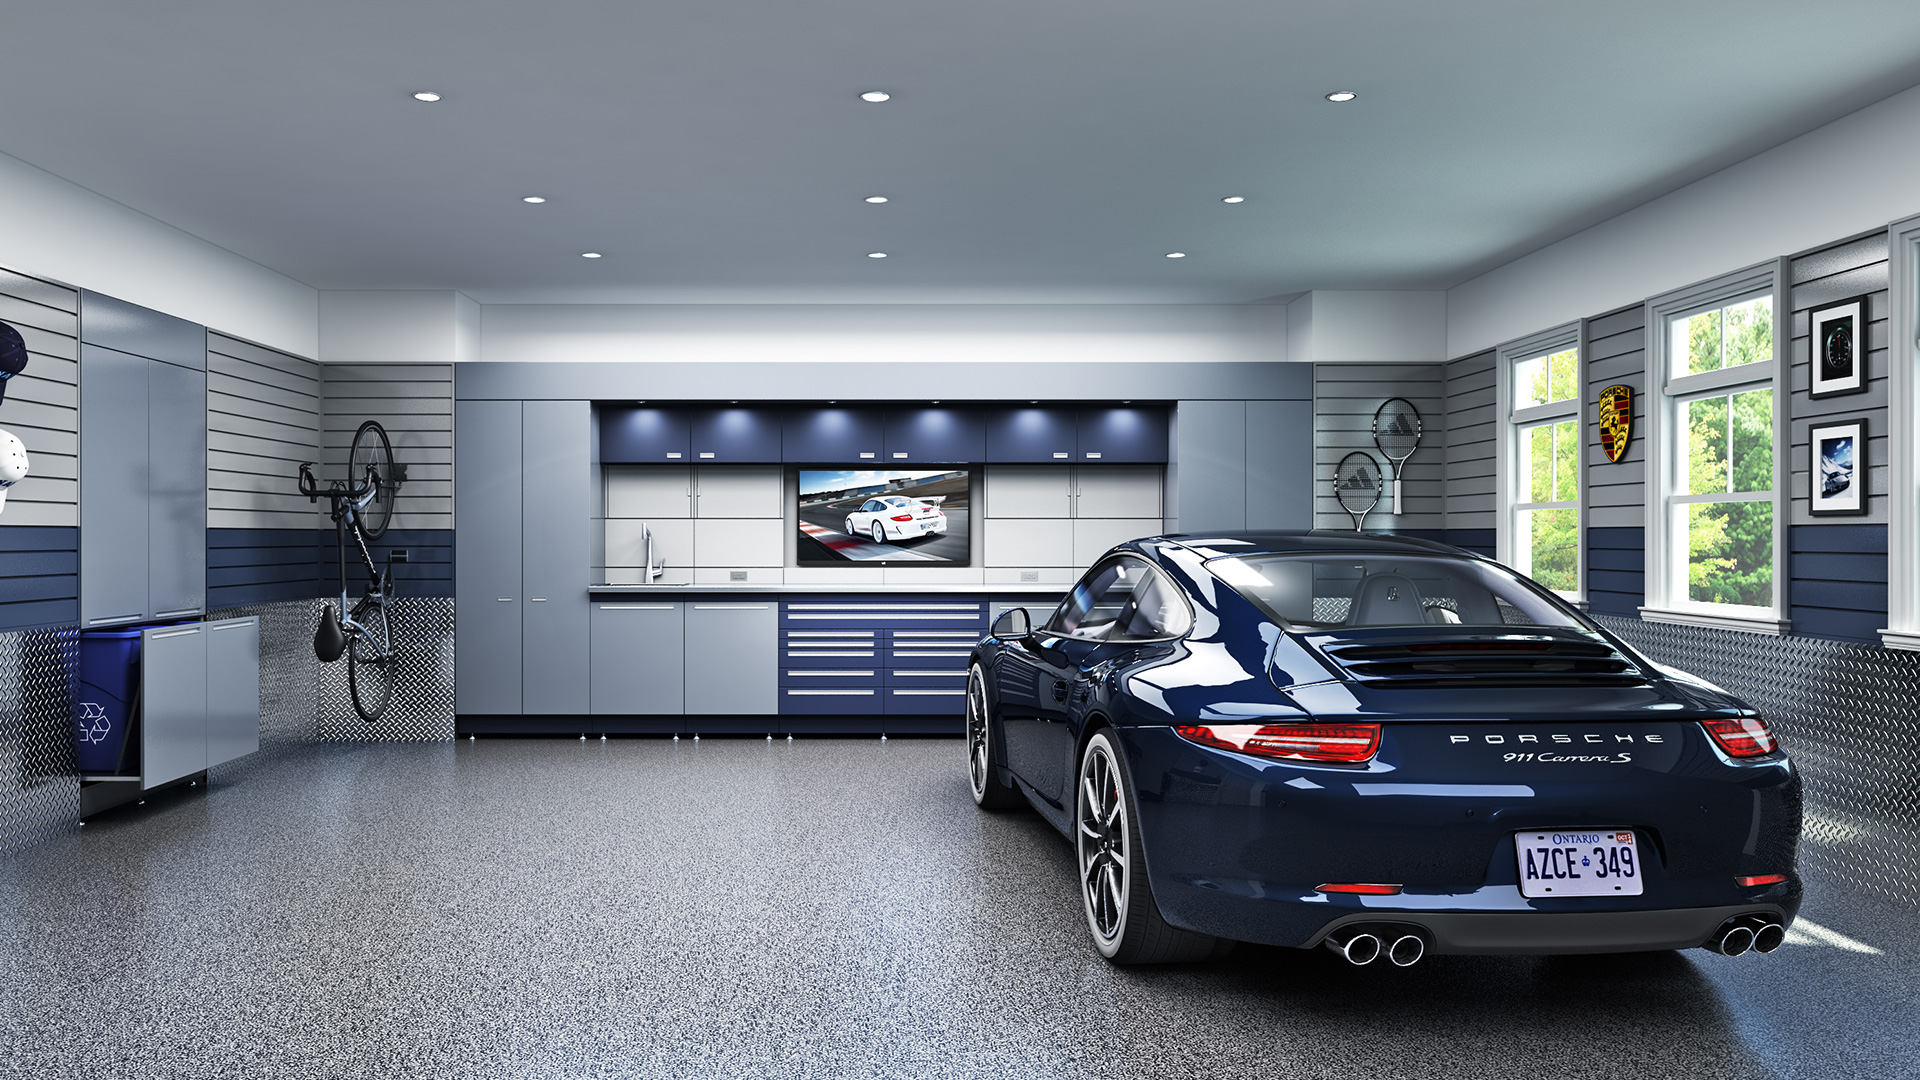 Garage Design Tips Vastu For Home 8 Tips For A Clutter Free Garage And Well